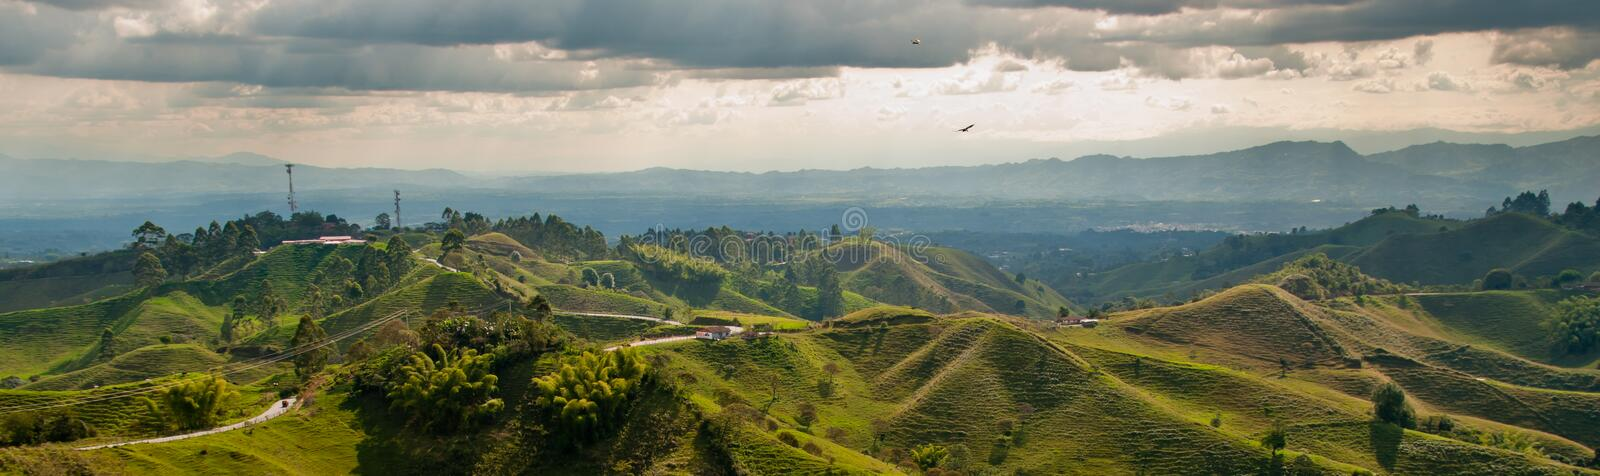 Panorama in the coffee triangle region of Colombia stock photography